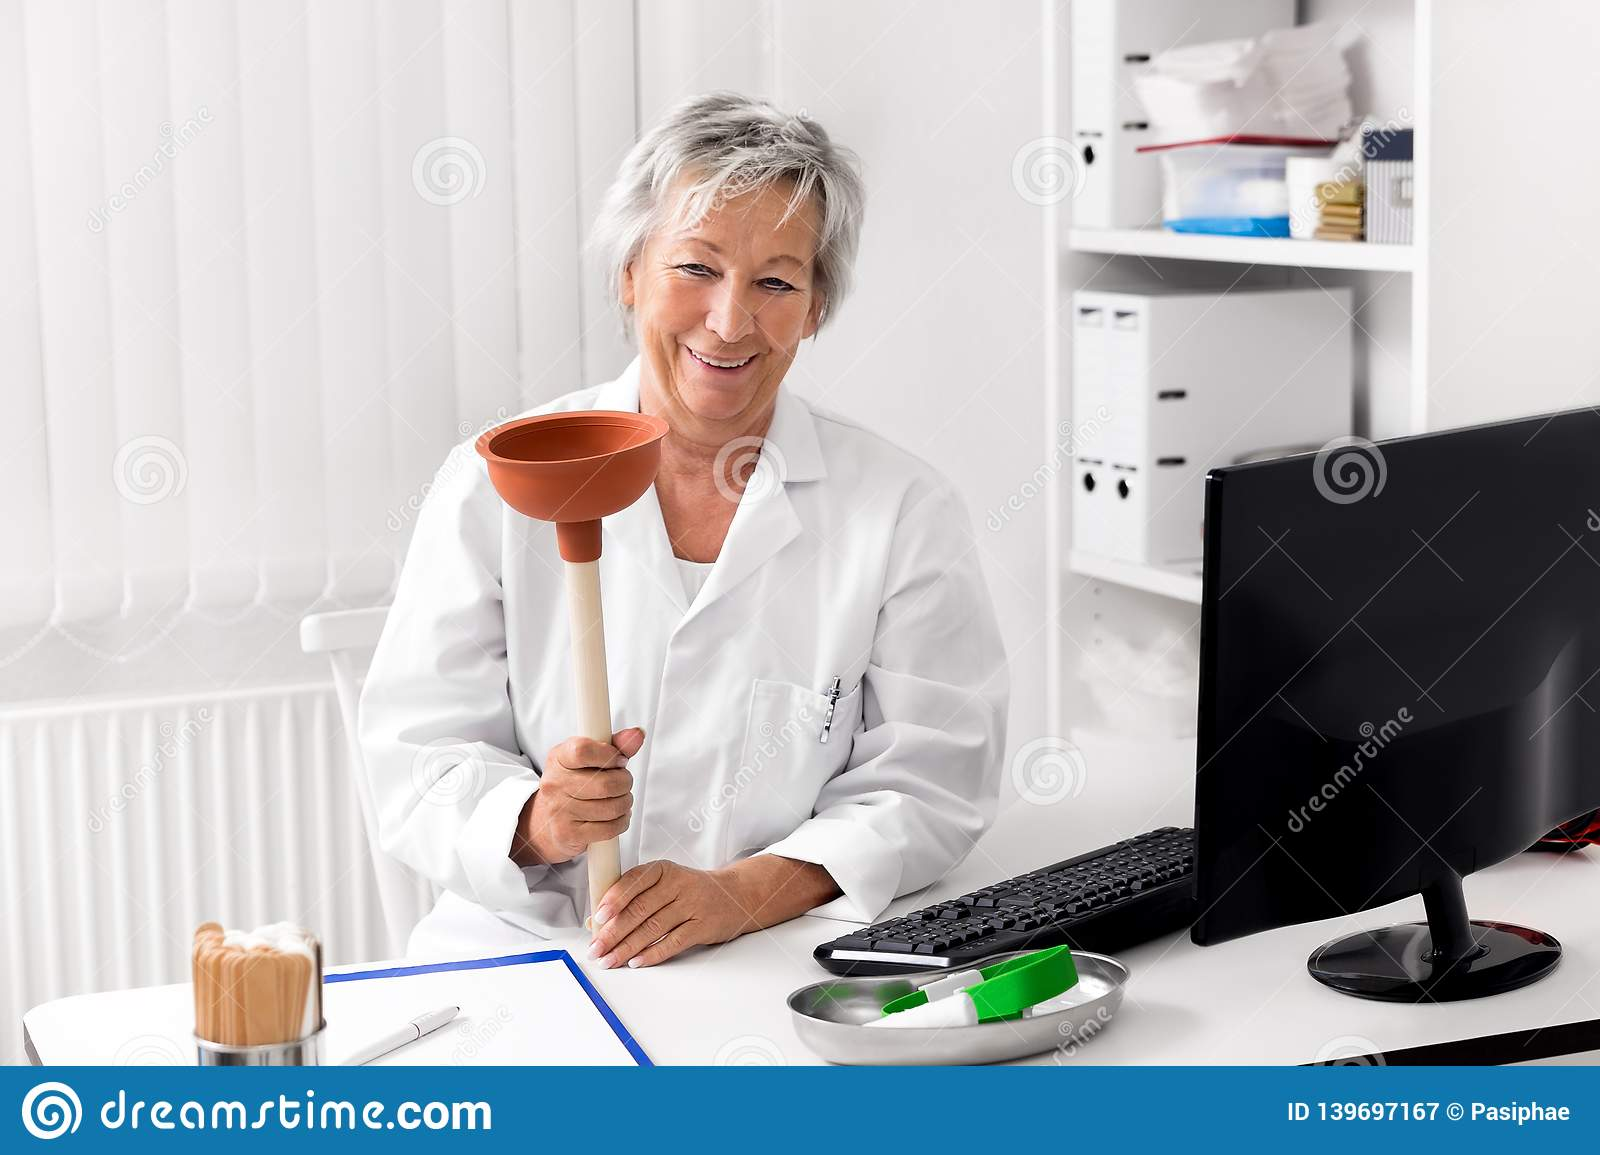 Funny Concept For Diarrhea Or Constipation Female Doctor With A Plunger Stock Image Image Of Health Healthcare 139697167